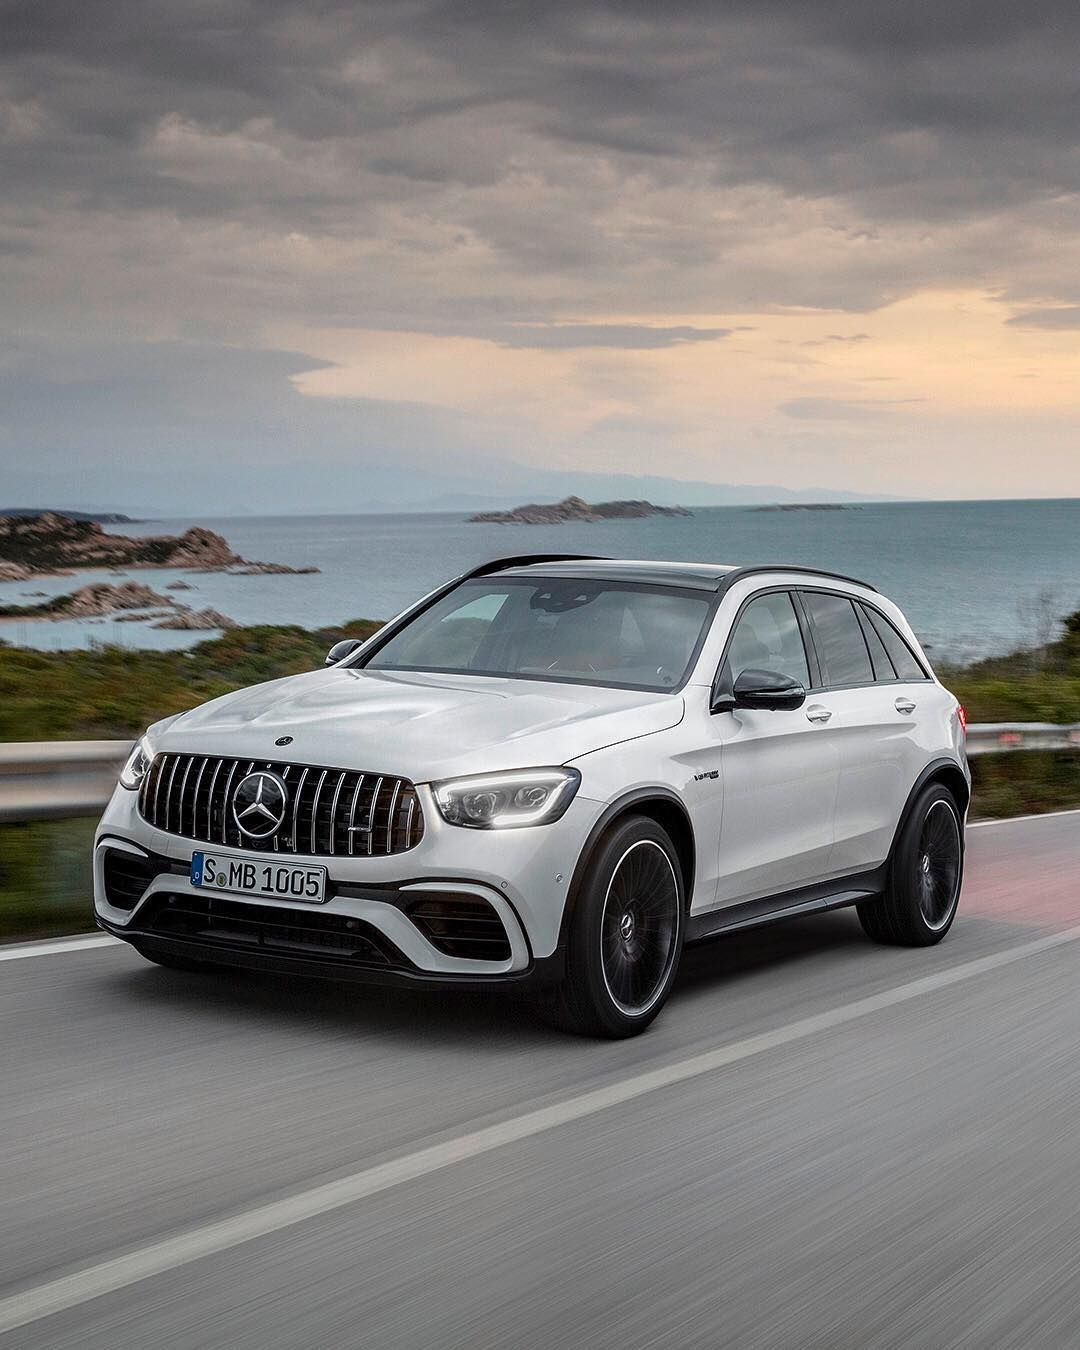 Car And Driver Di Instagram The Mercedesamg Glc63 Suv And Coupe